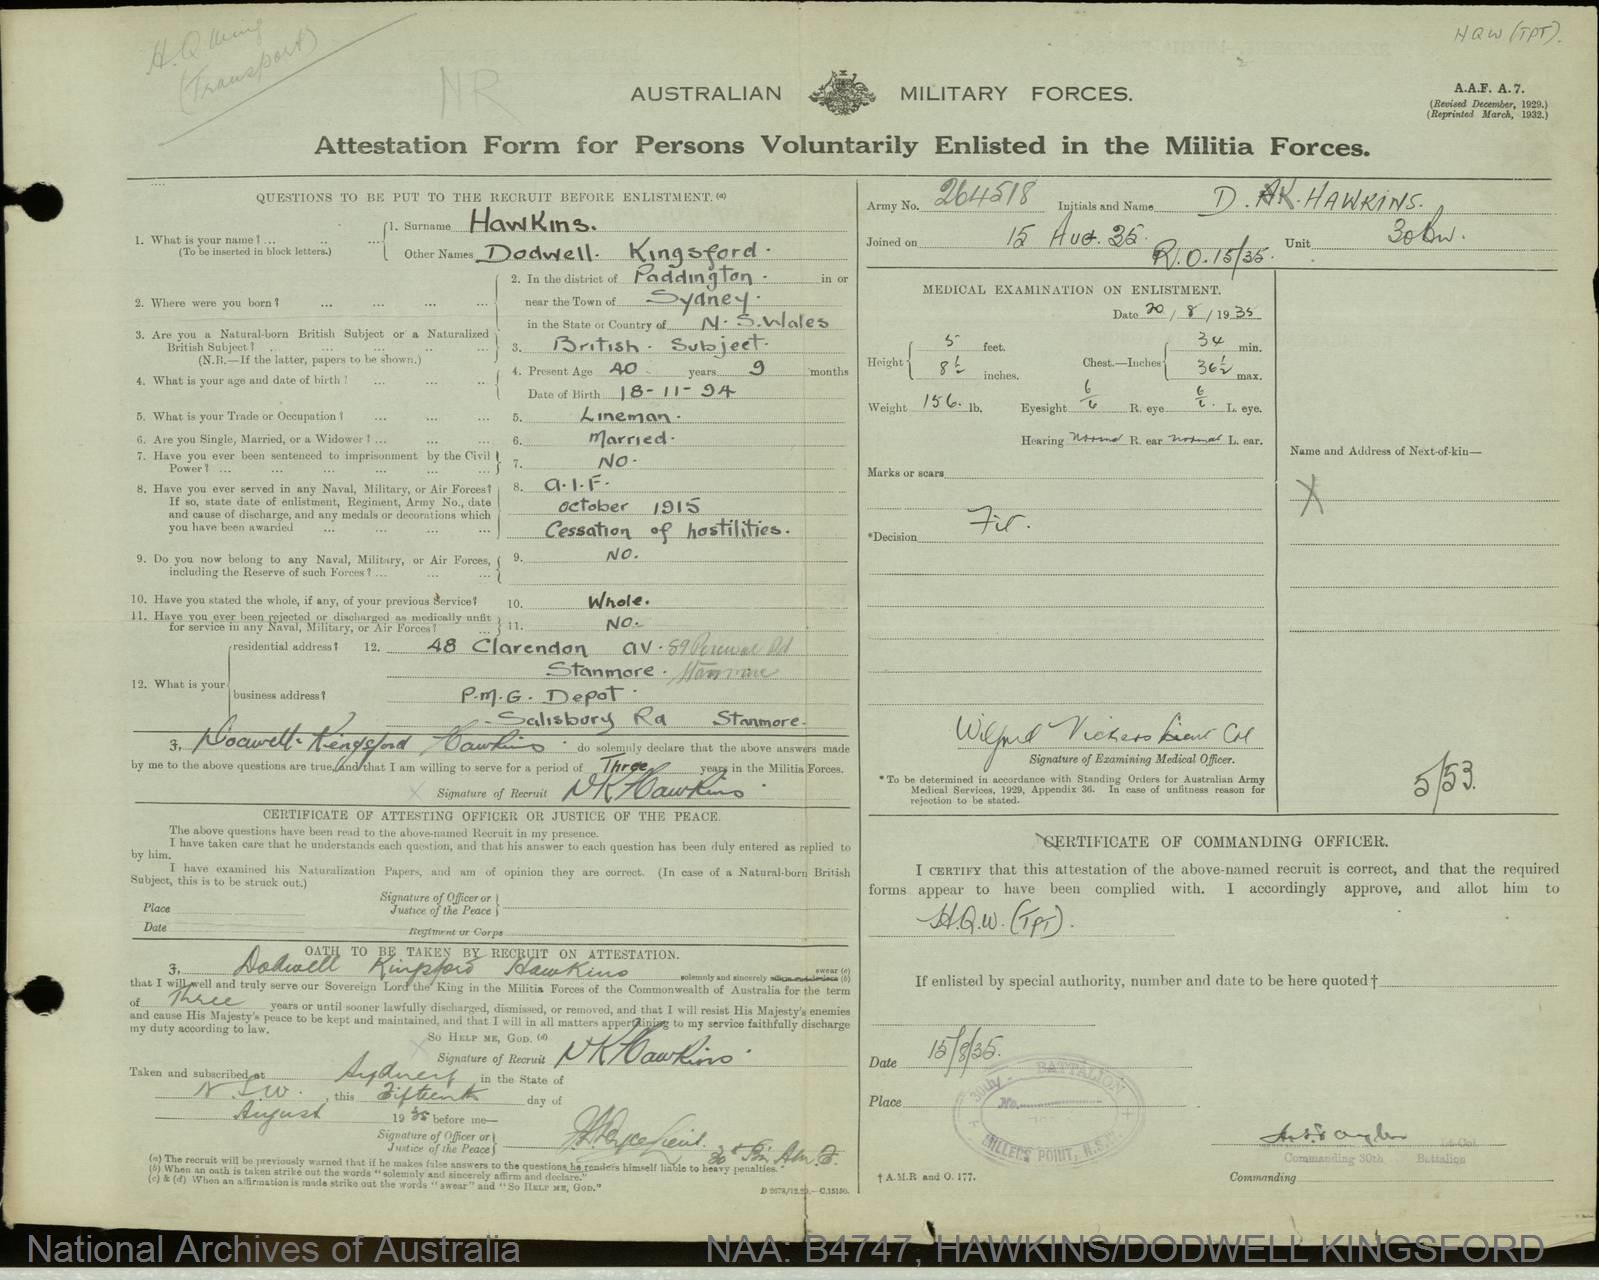 Hawkins, Dodwell Kingsford; Army Number - 264518; Date of birth - 18 November 1894